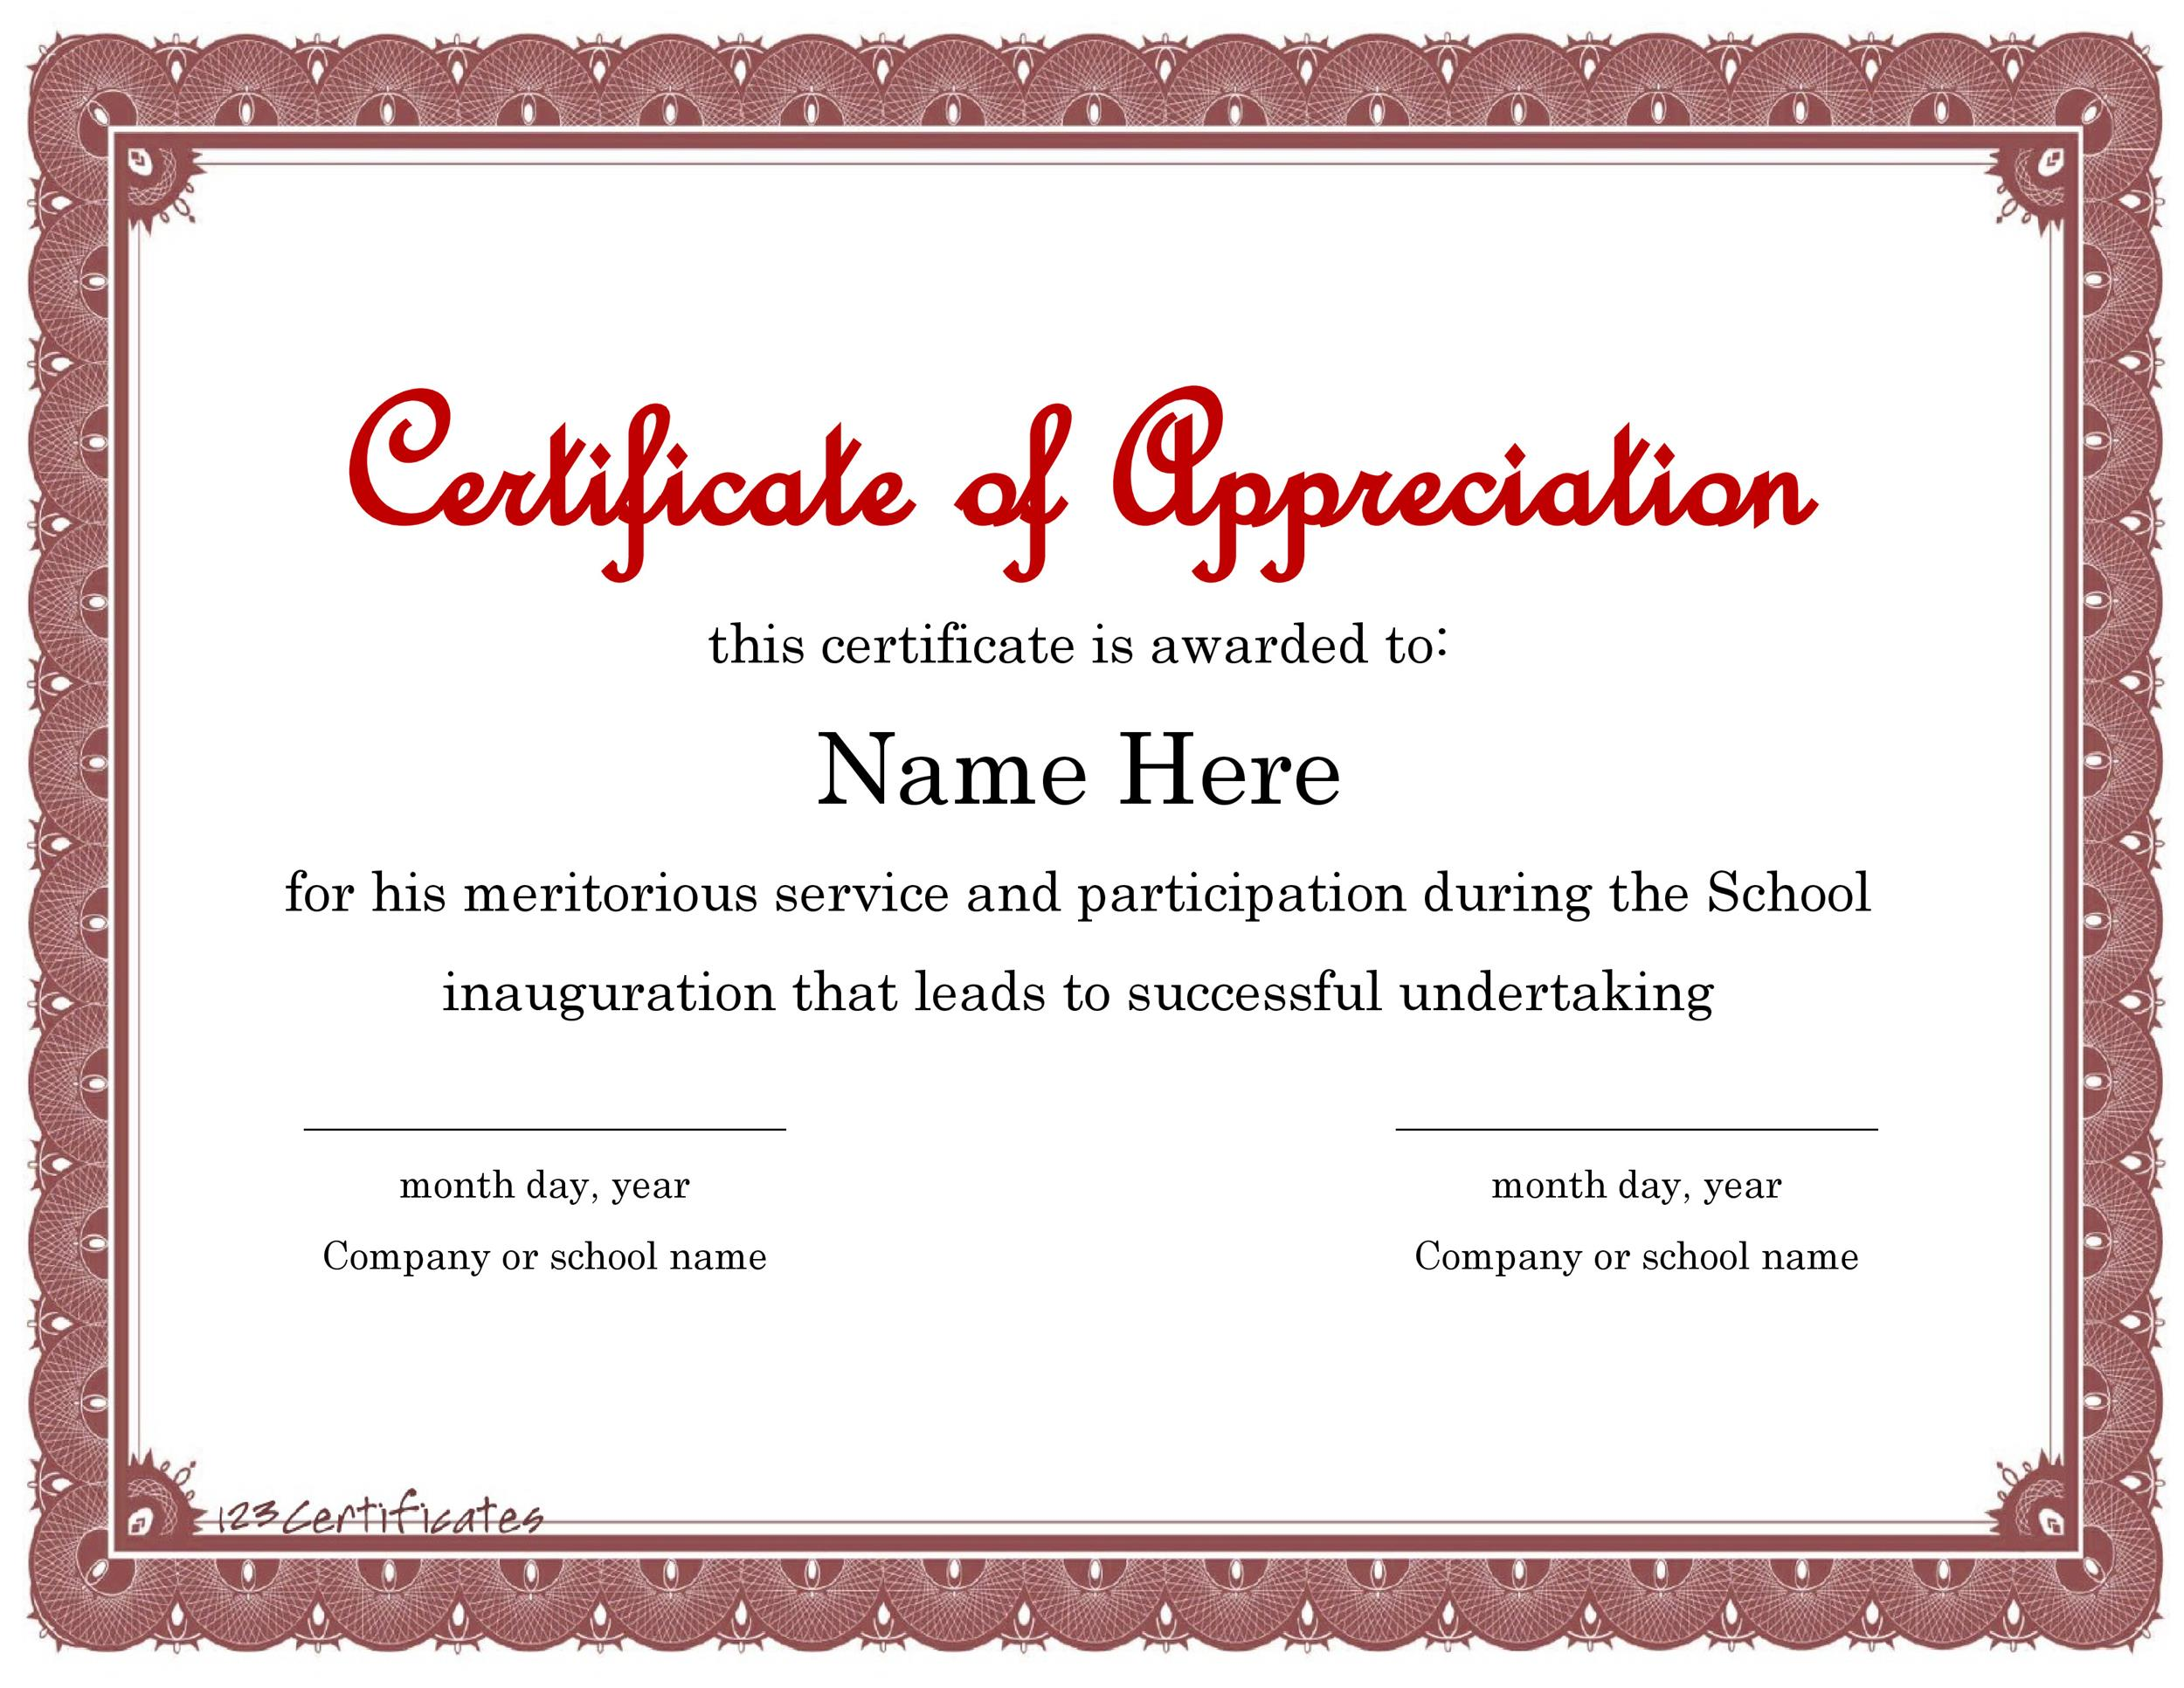 Certificates Of Appreciation | 30 Free Certificate Of Appreciation Templates And Letters